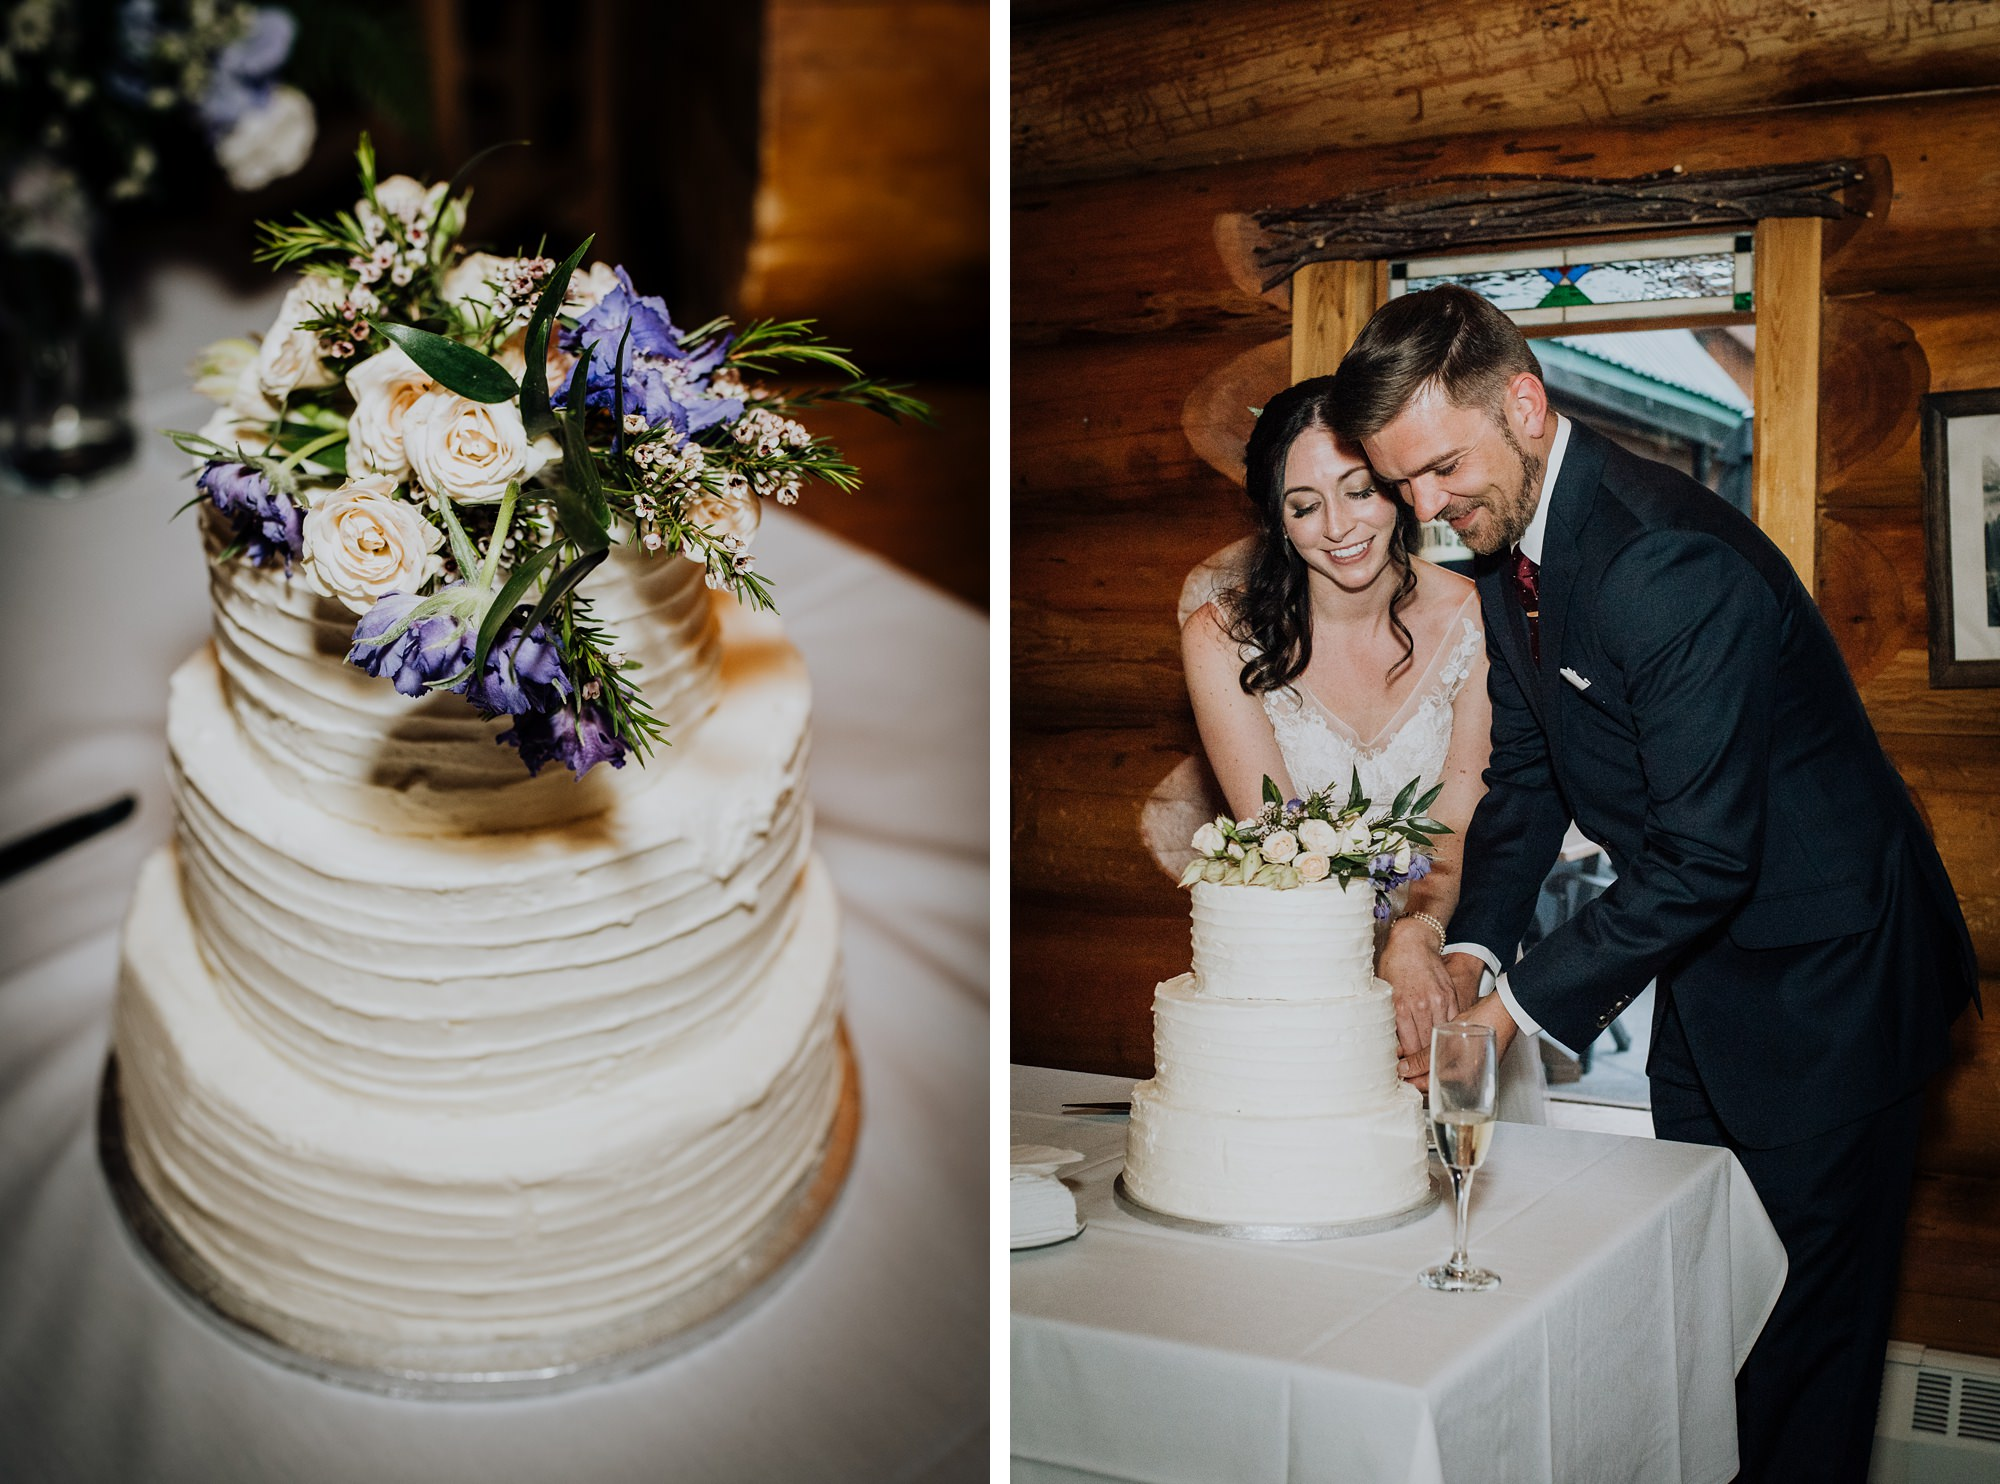 Bride and groom cut their wedding cake in log cabin at classic and modern mountain wedding